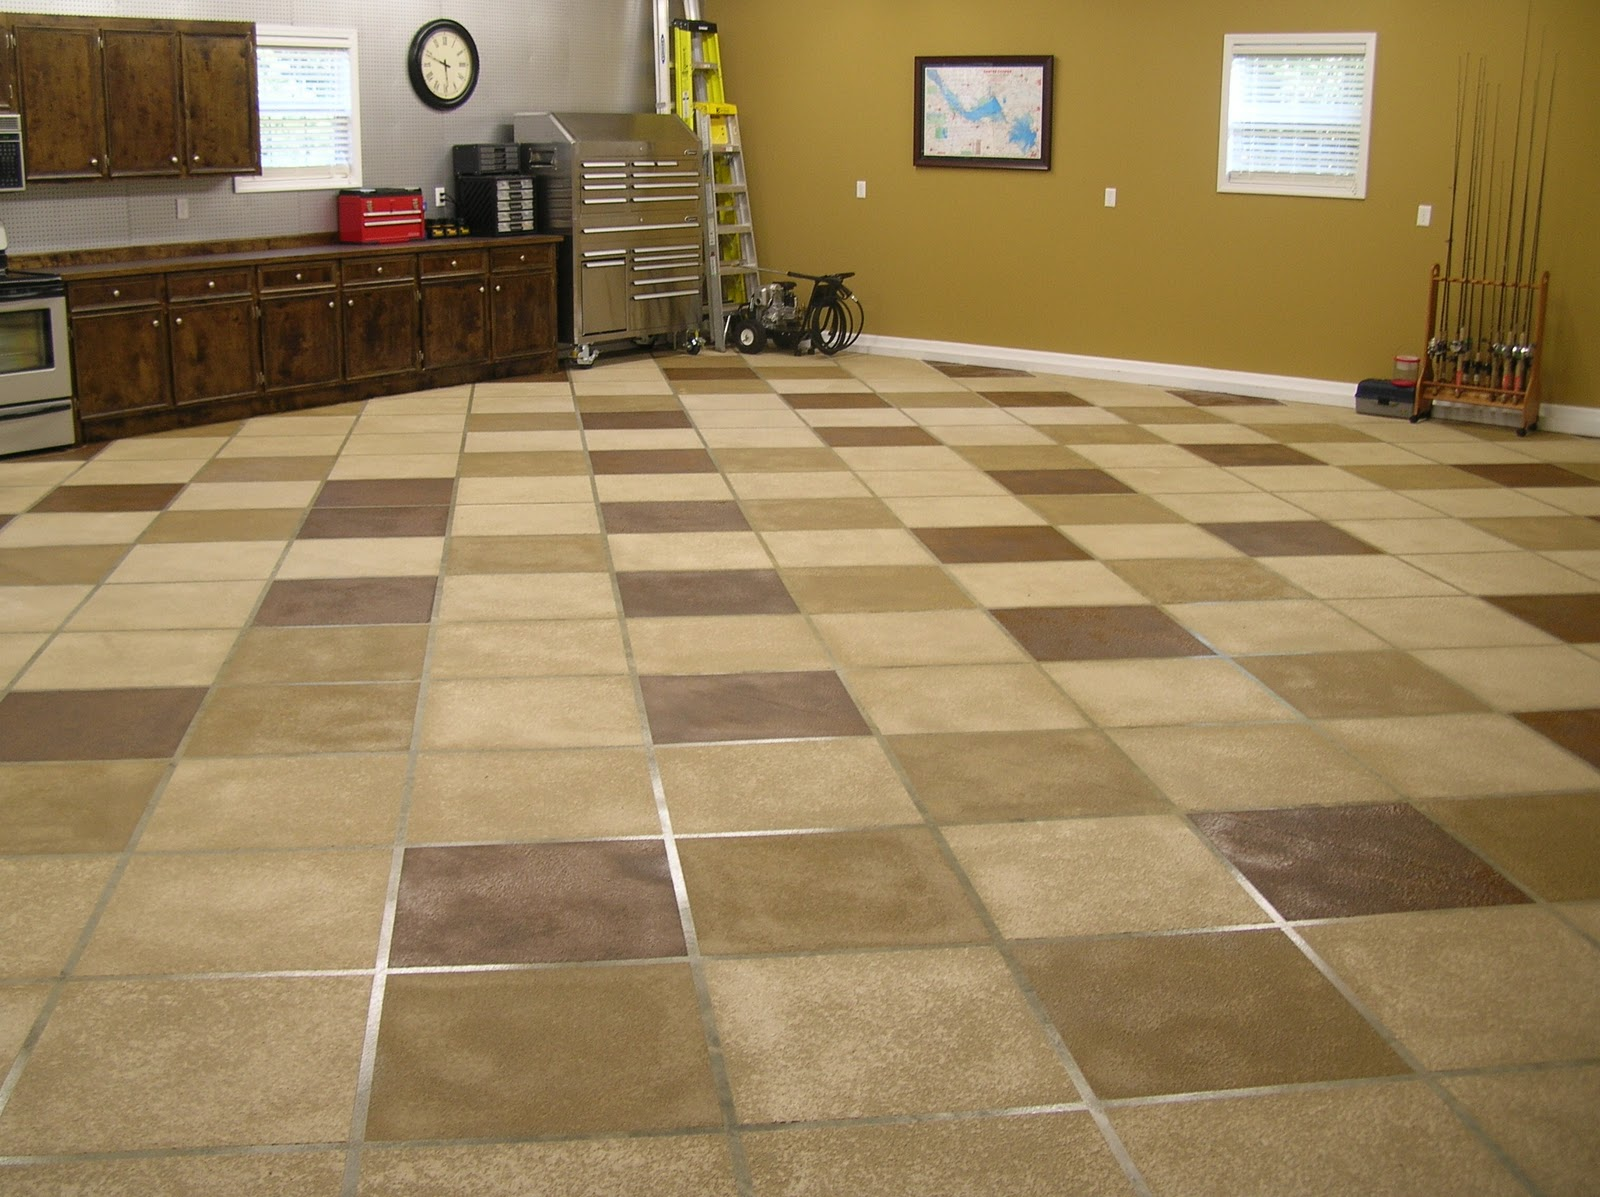 Gary mercer group west chester pa area real estate for Best product to clean garage floor